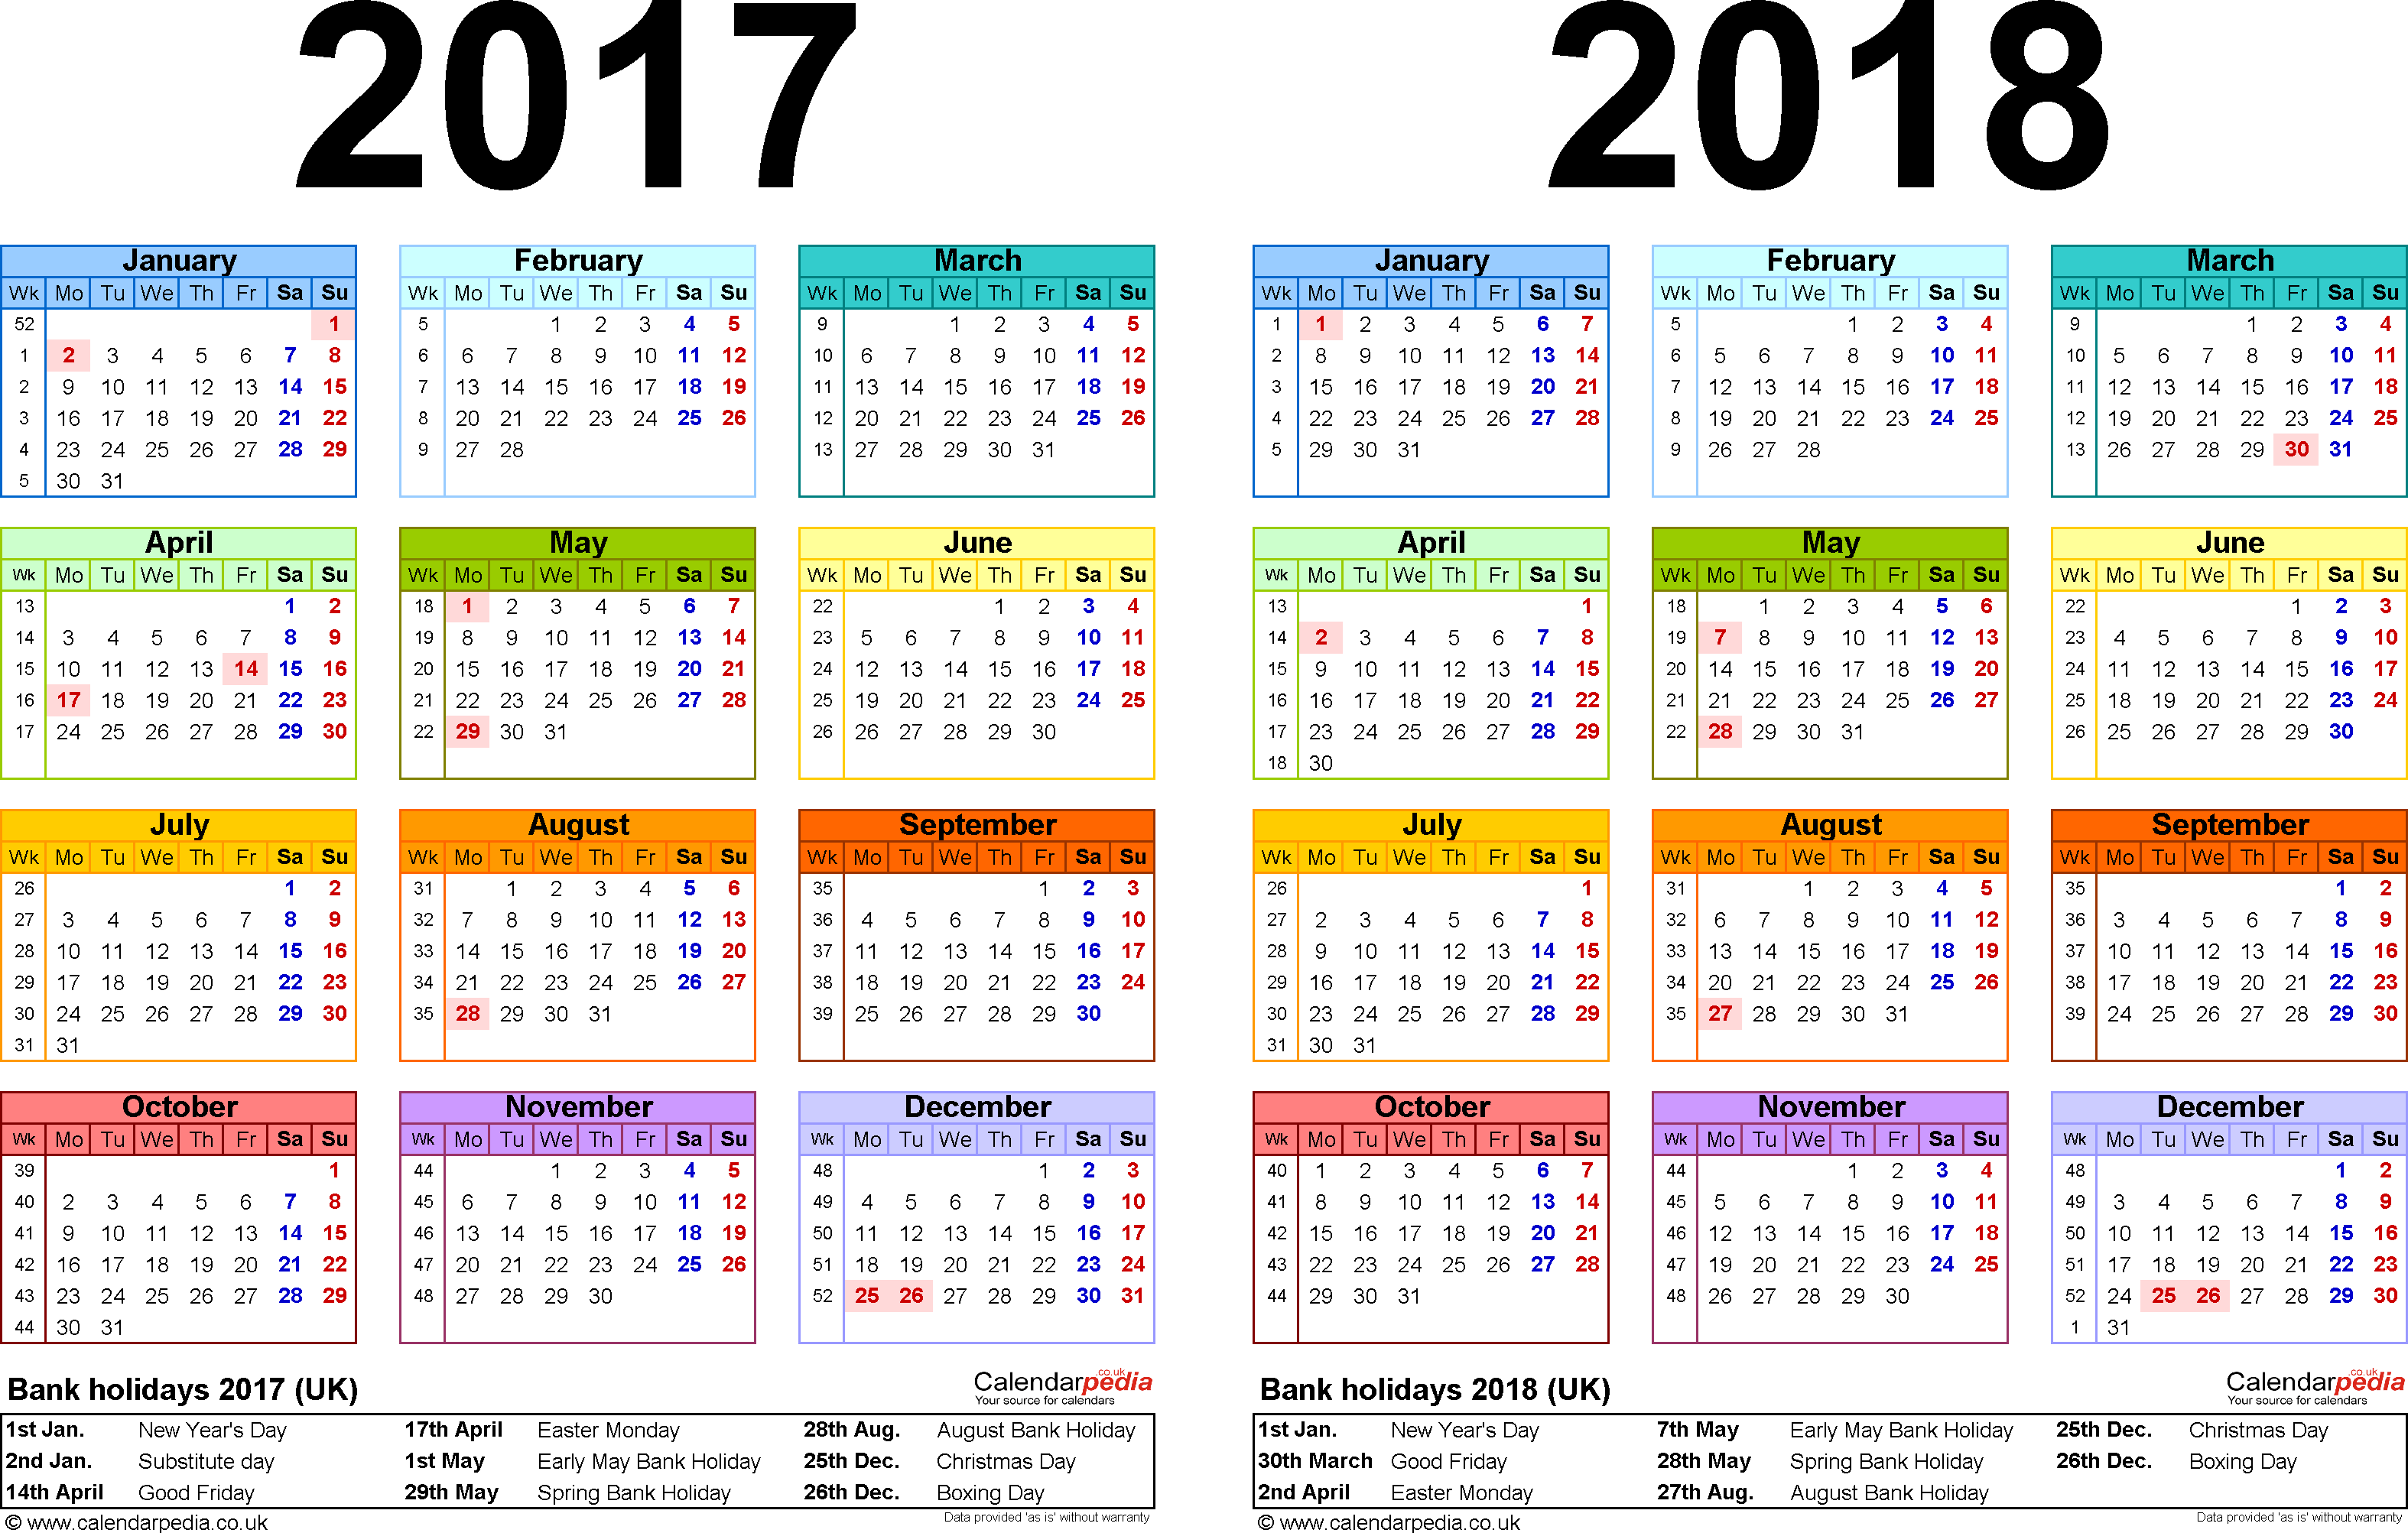 Download Template 2: PDF template for two year calendar 2017/2018 multi-coloured (landscape orientation, 1 page, A4)